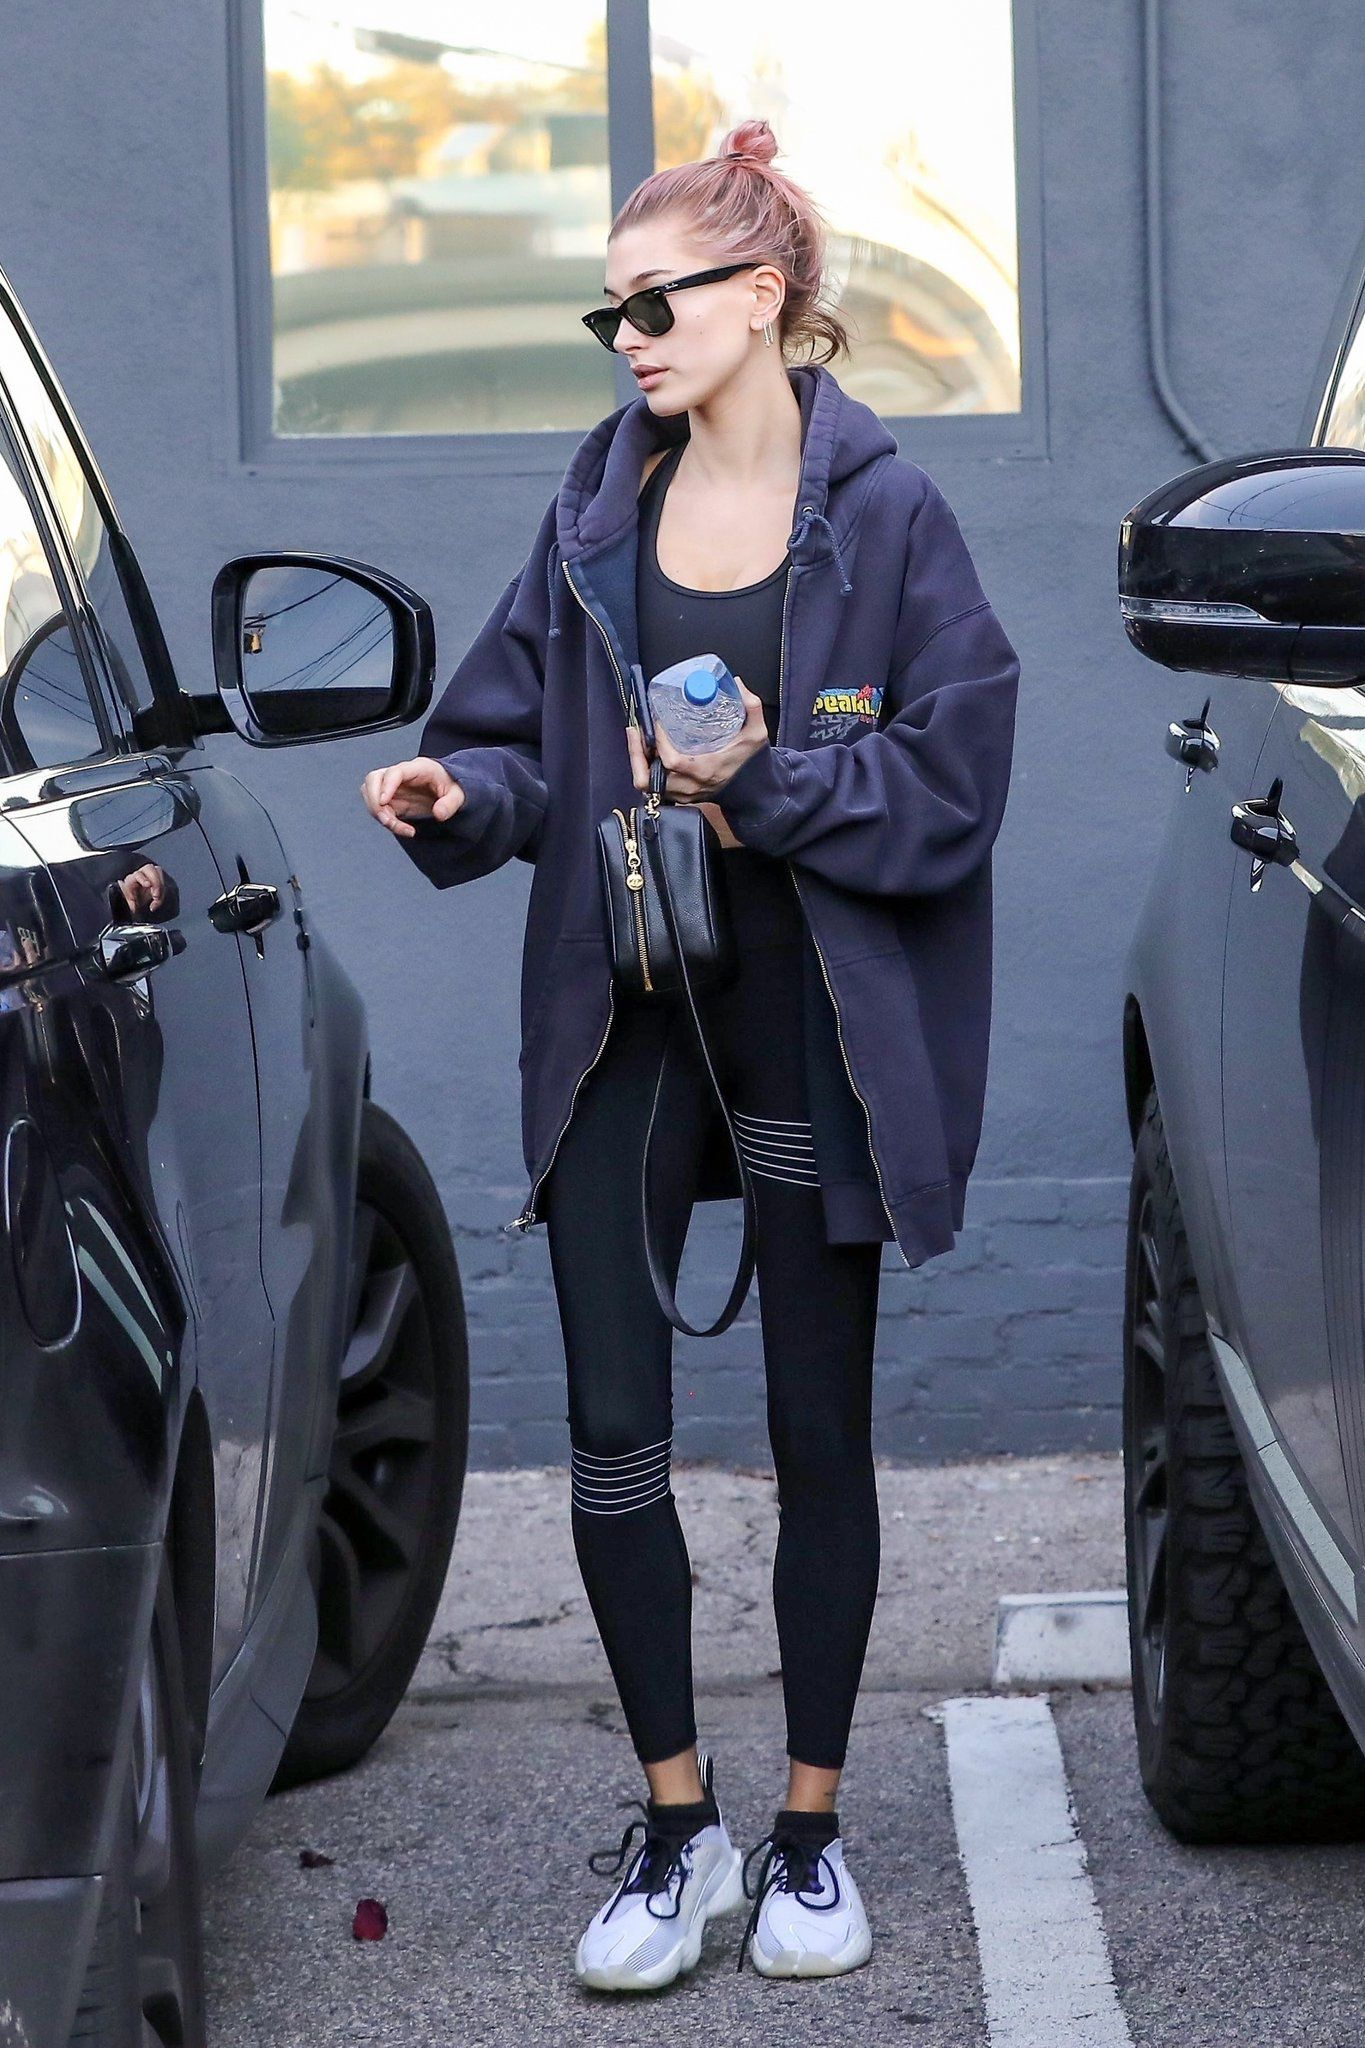 Pin by Shiloh Latham on athleisure | Hailey baldwin street